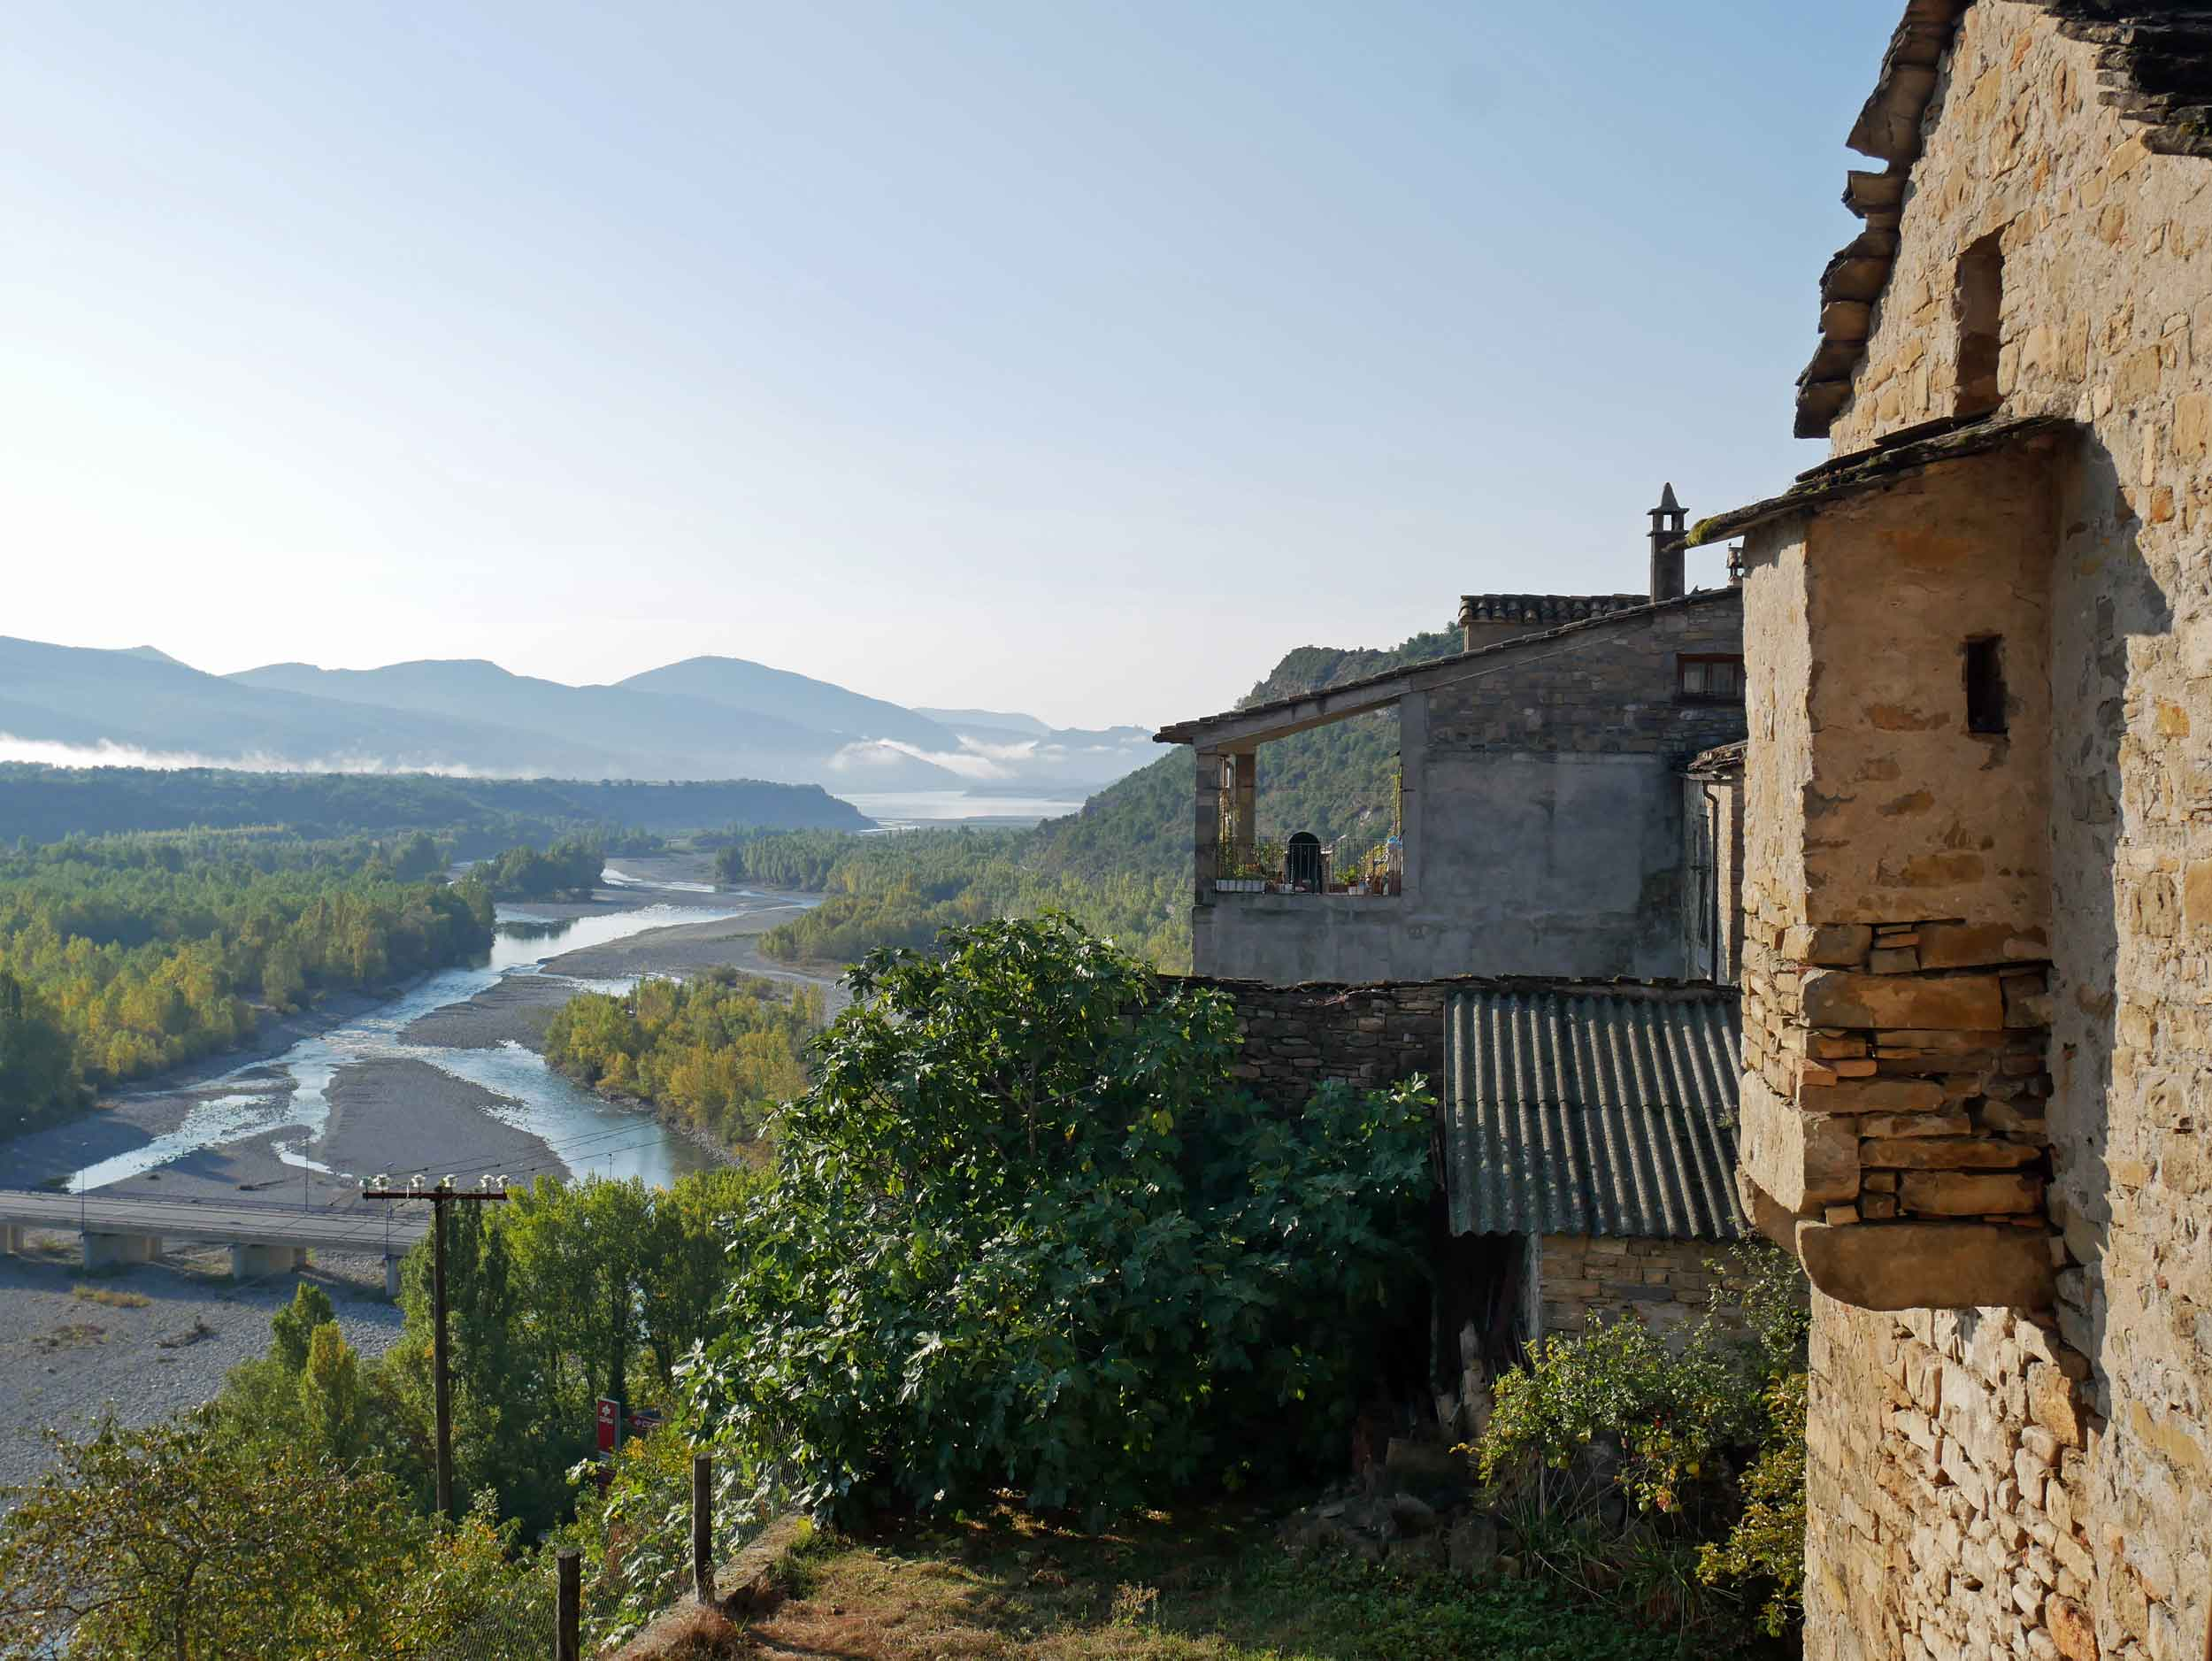 The village sits at the confluence of two rivers, the Cinca and the Ara, in the foothills of the Spanish Pyrenees in Huesca, Aragón.